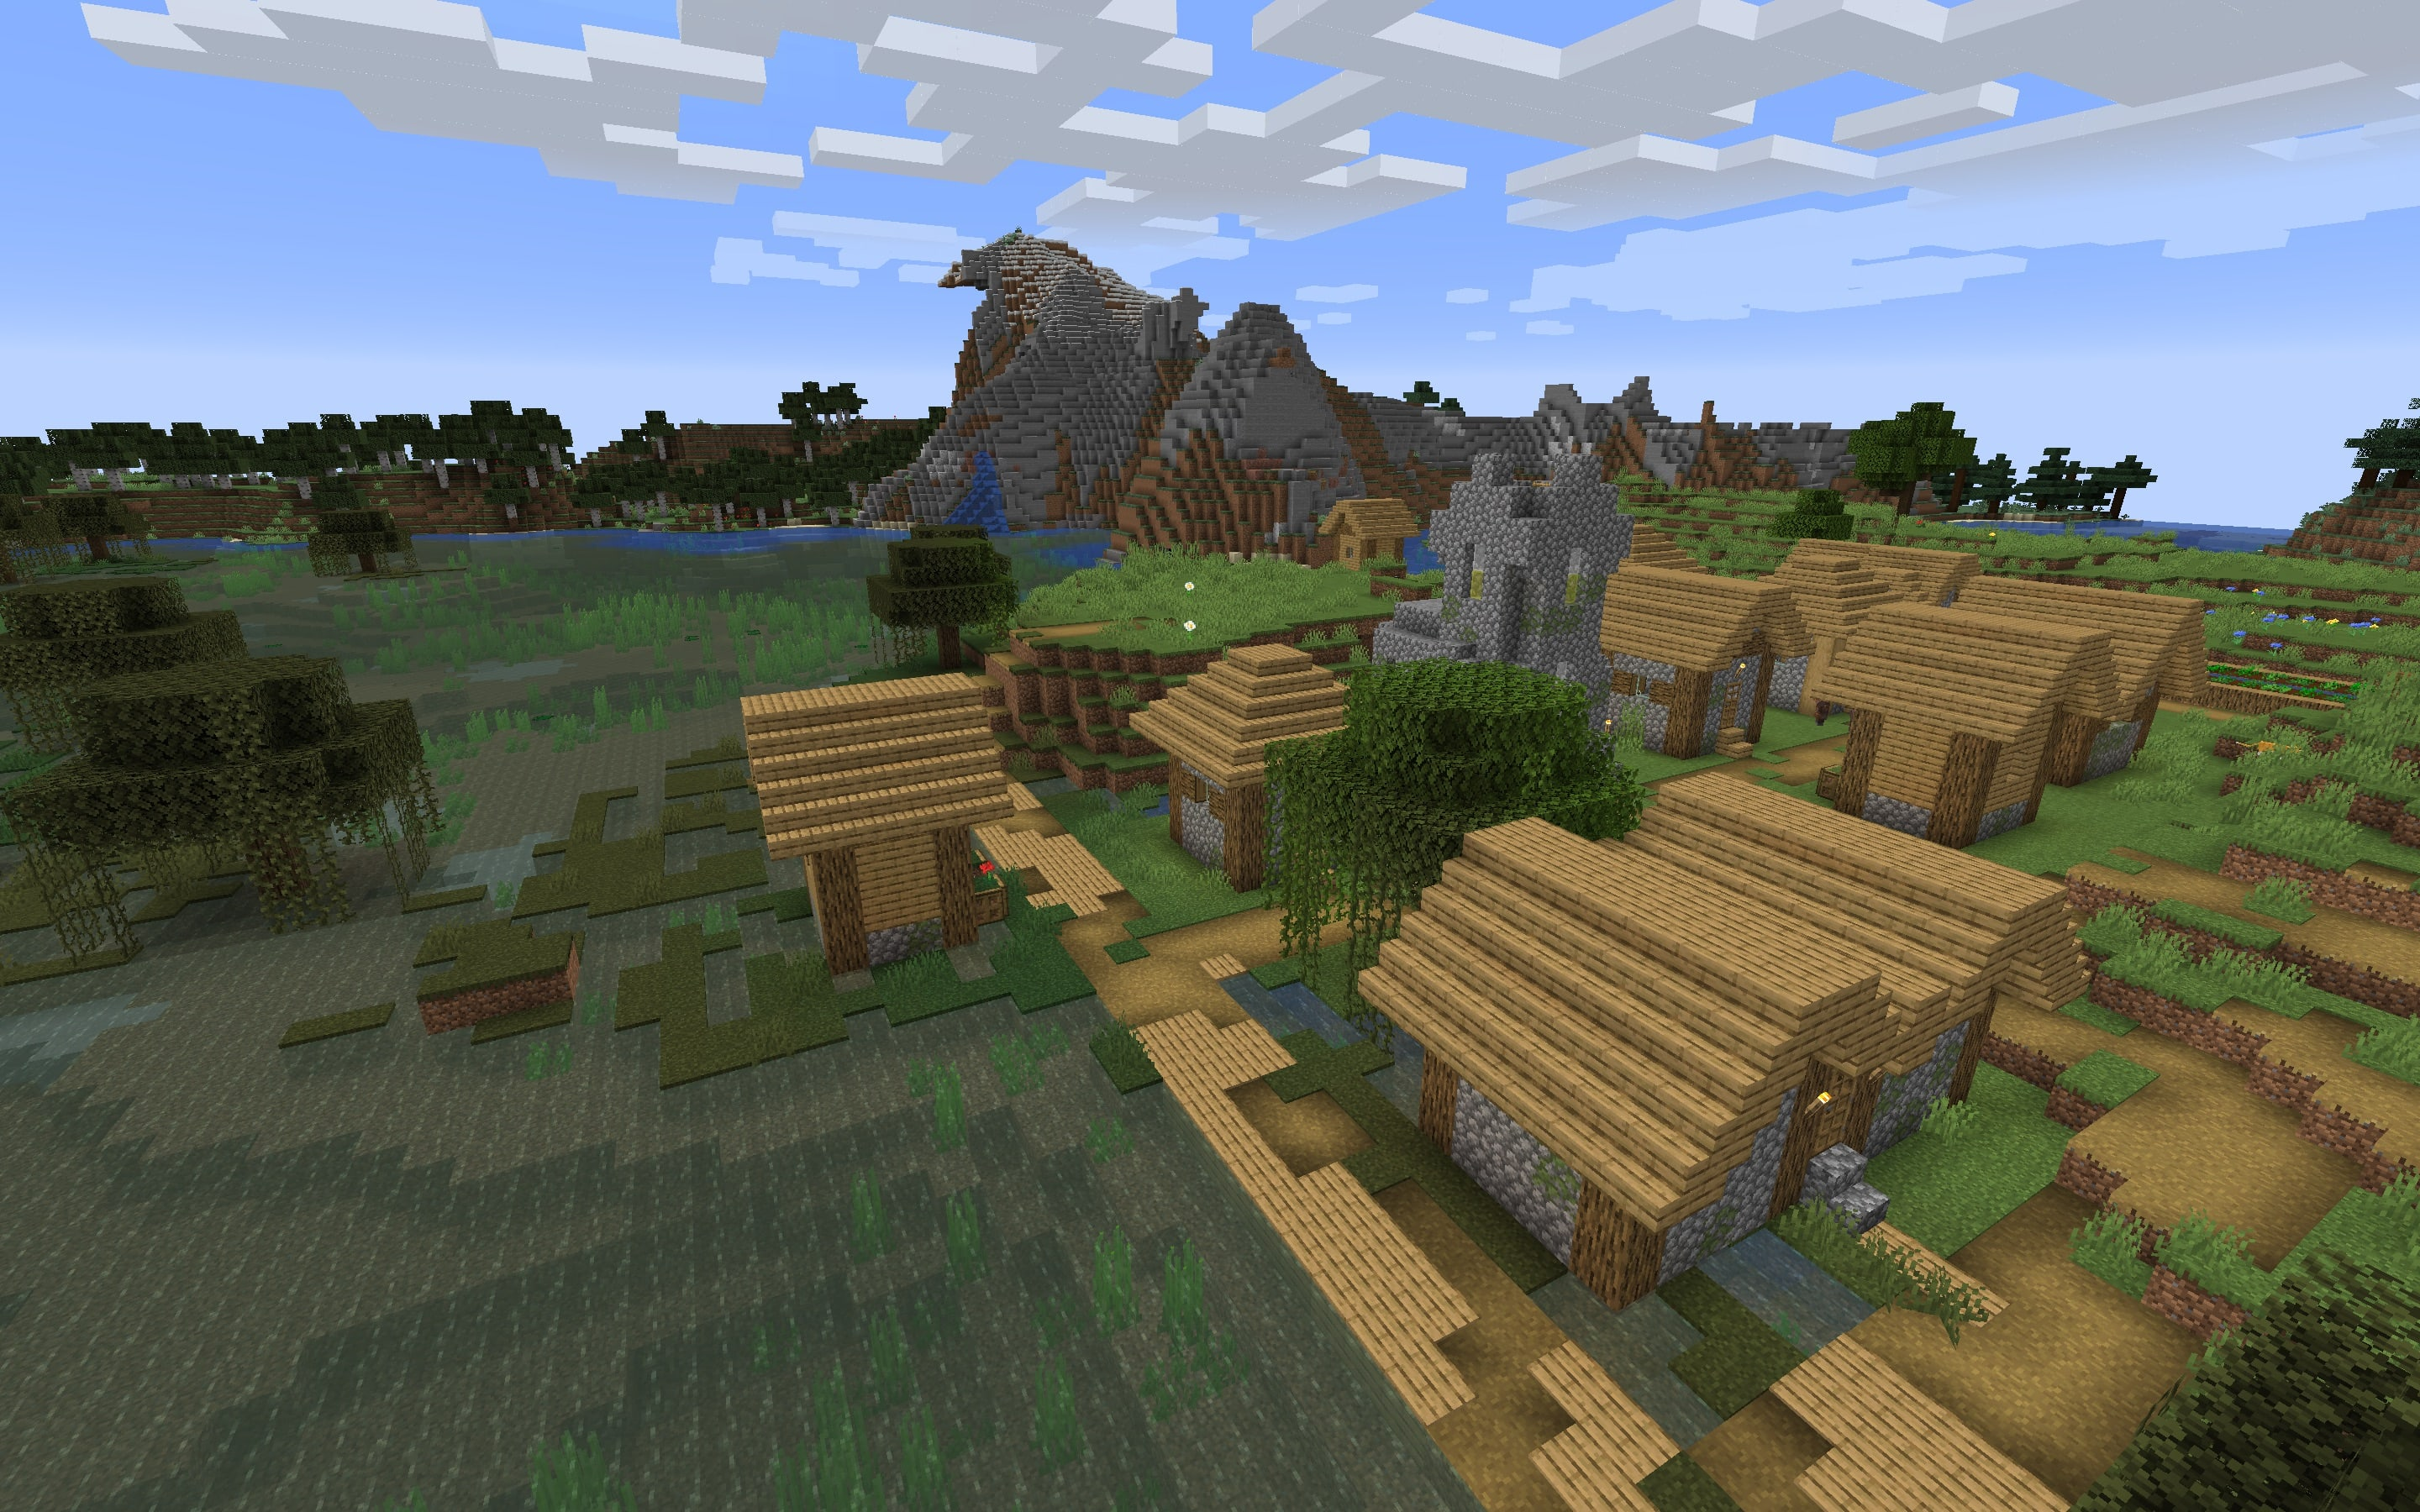 Swamp Biome Village Minecraft 1.14 Seed